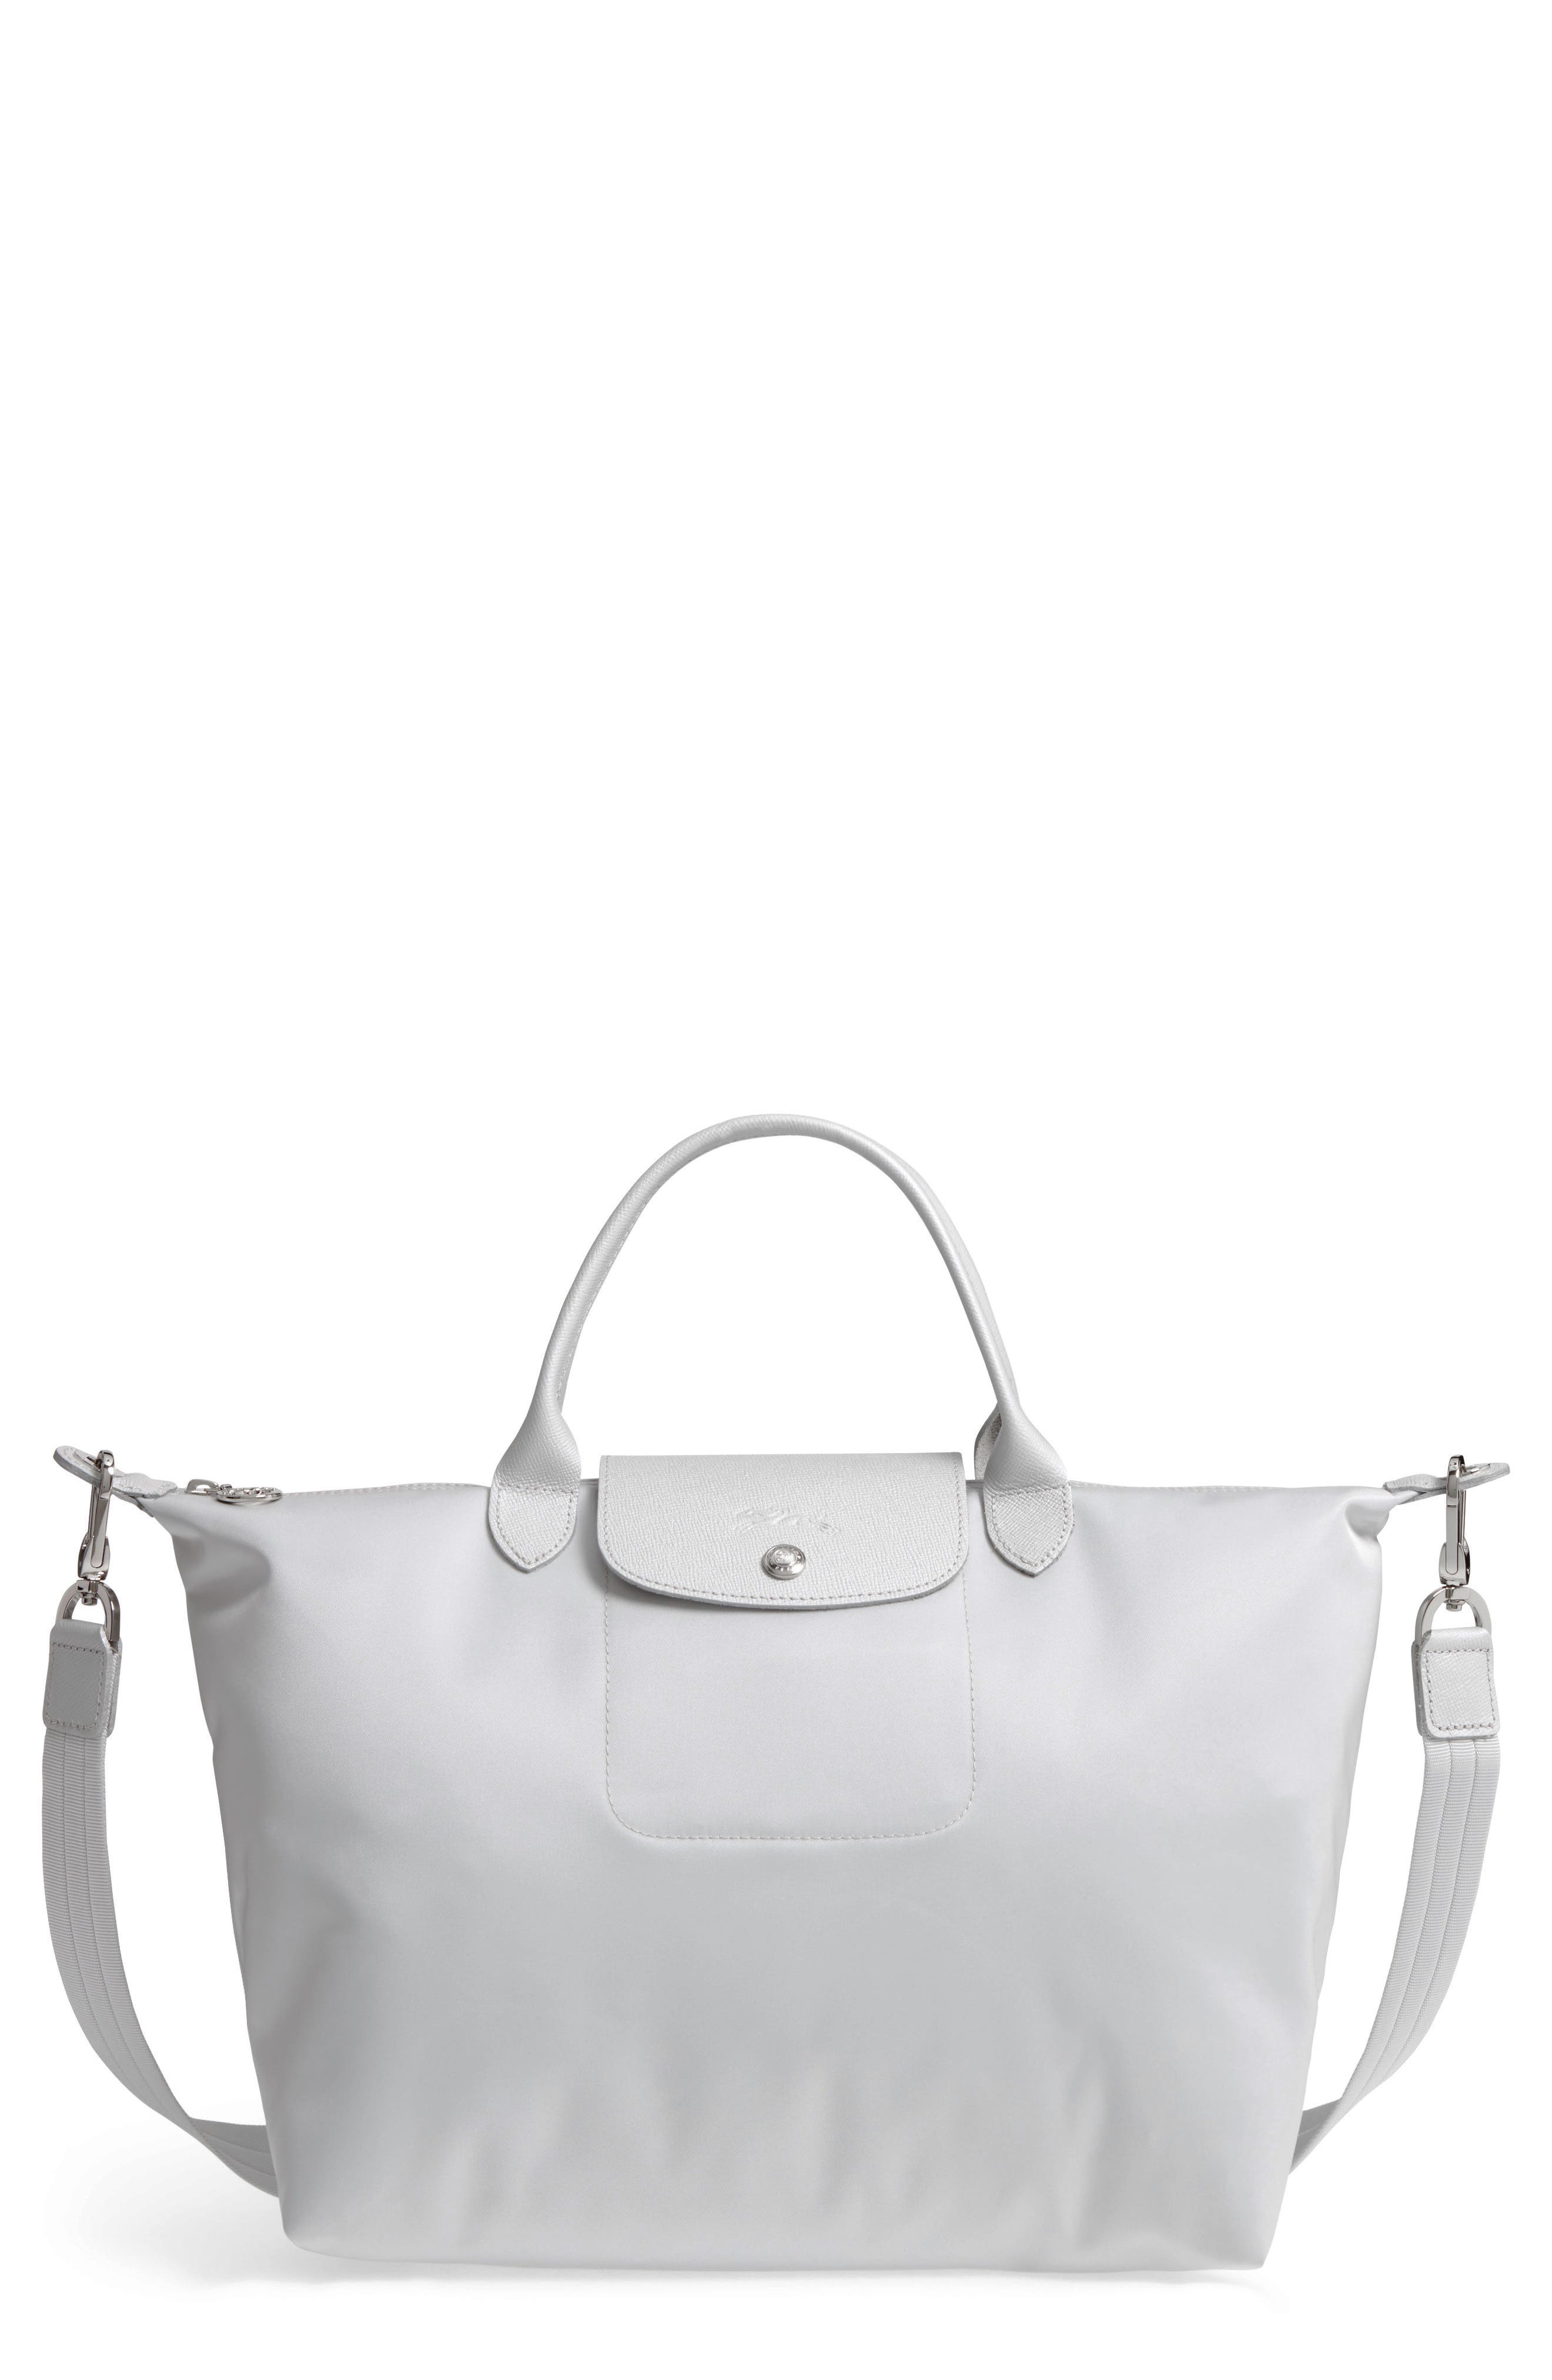 Longchamp \u0027Medium Le Pliage Neo\u0027 Nylon Top Handle Tote